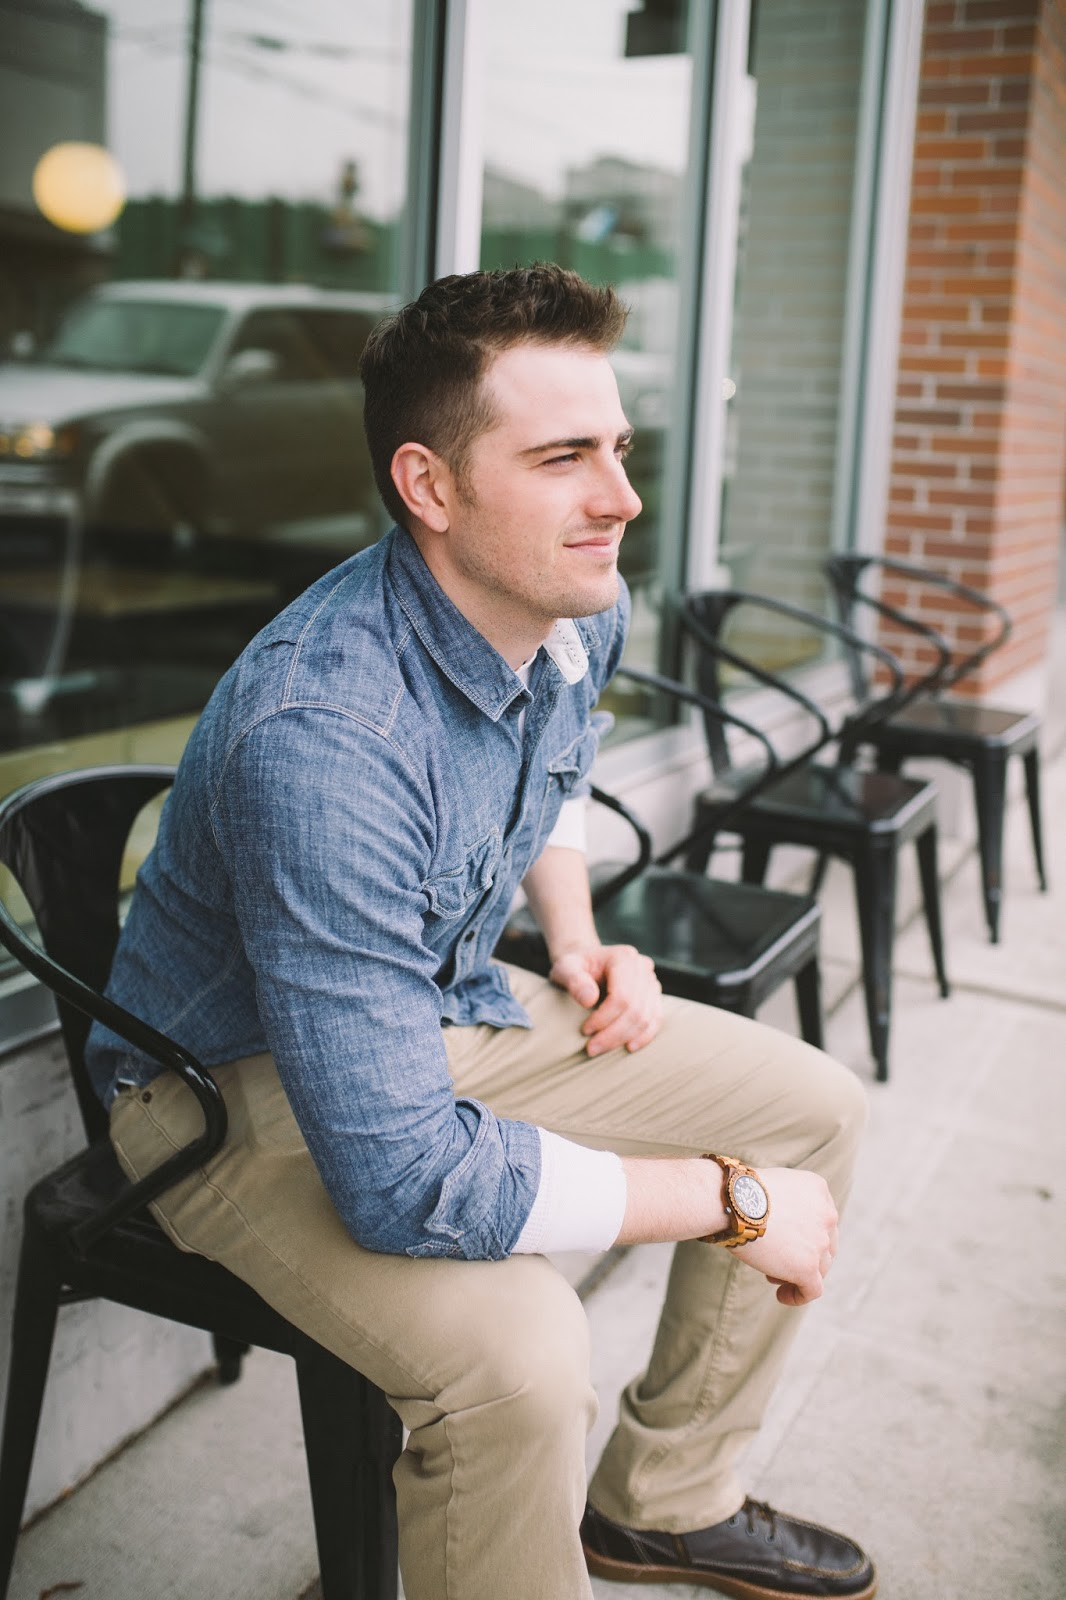 Menswear: 3 Tips to Transition to Spring